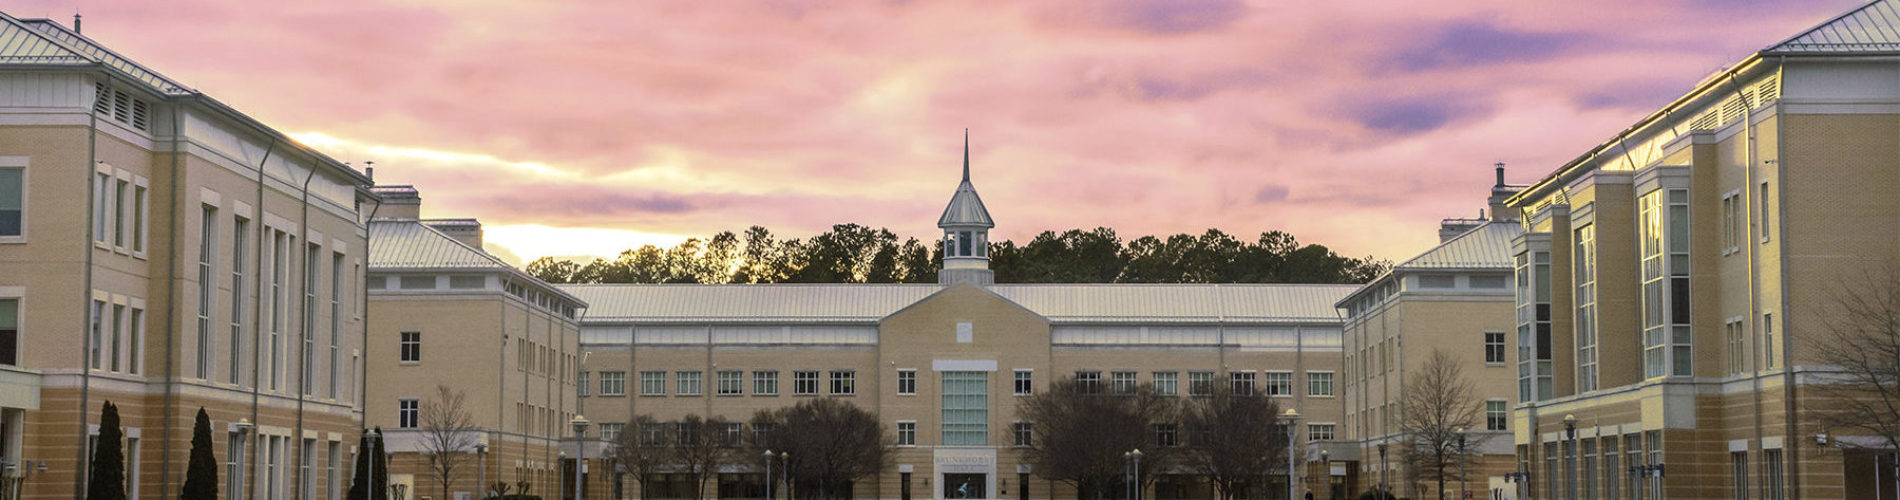 A photo of the Wor-Wic Community College building at dusk